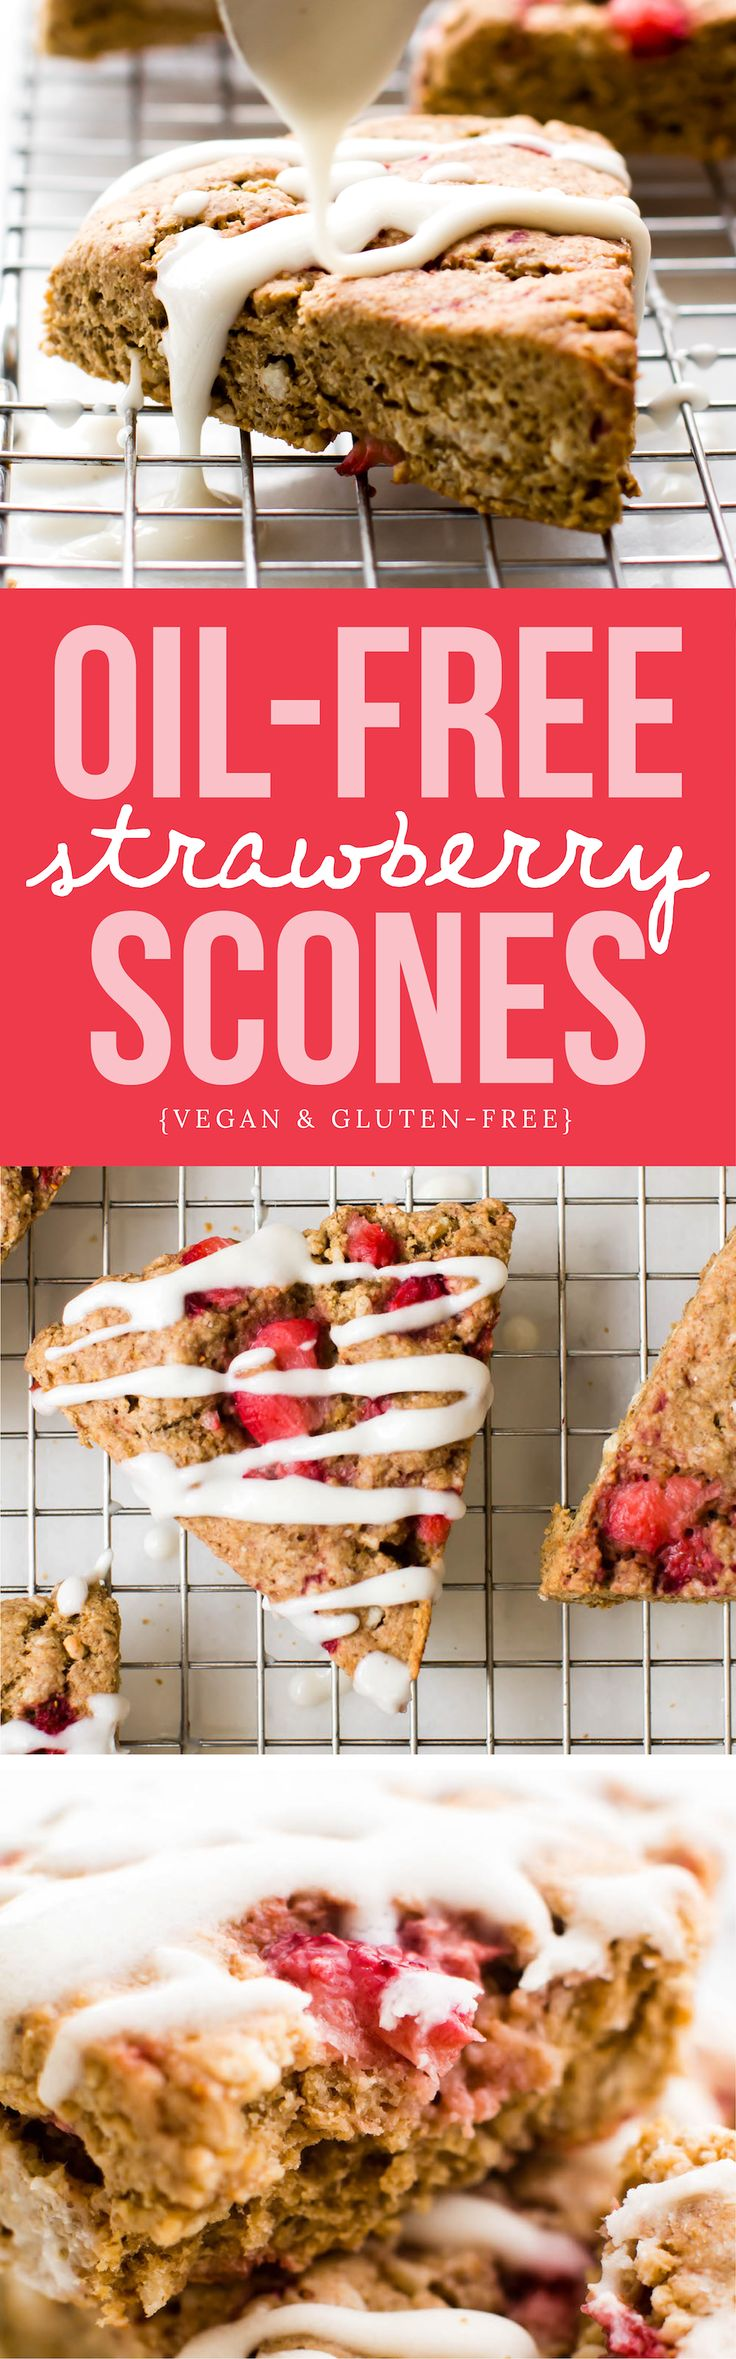 These oat flour scones are gluten-free and oil-free made with coconut butter or banana for a crumbly, subtly-sweet, baked breakfast treat!